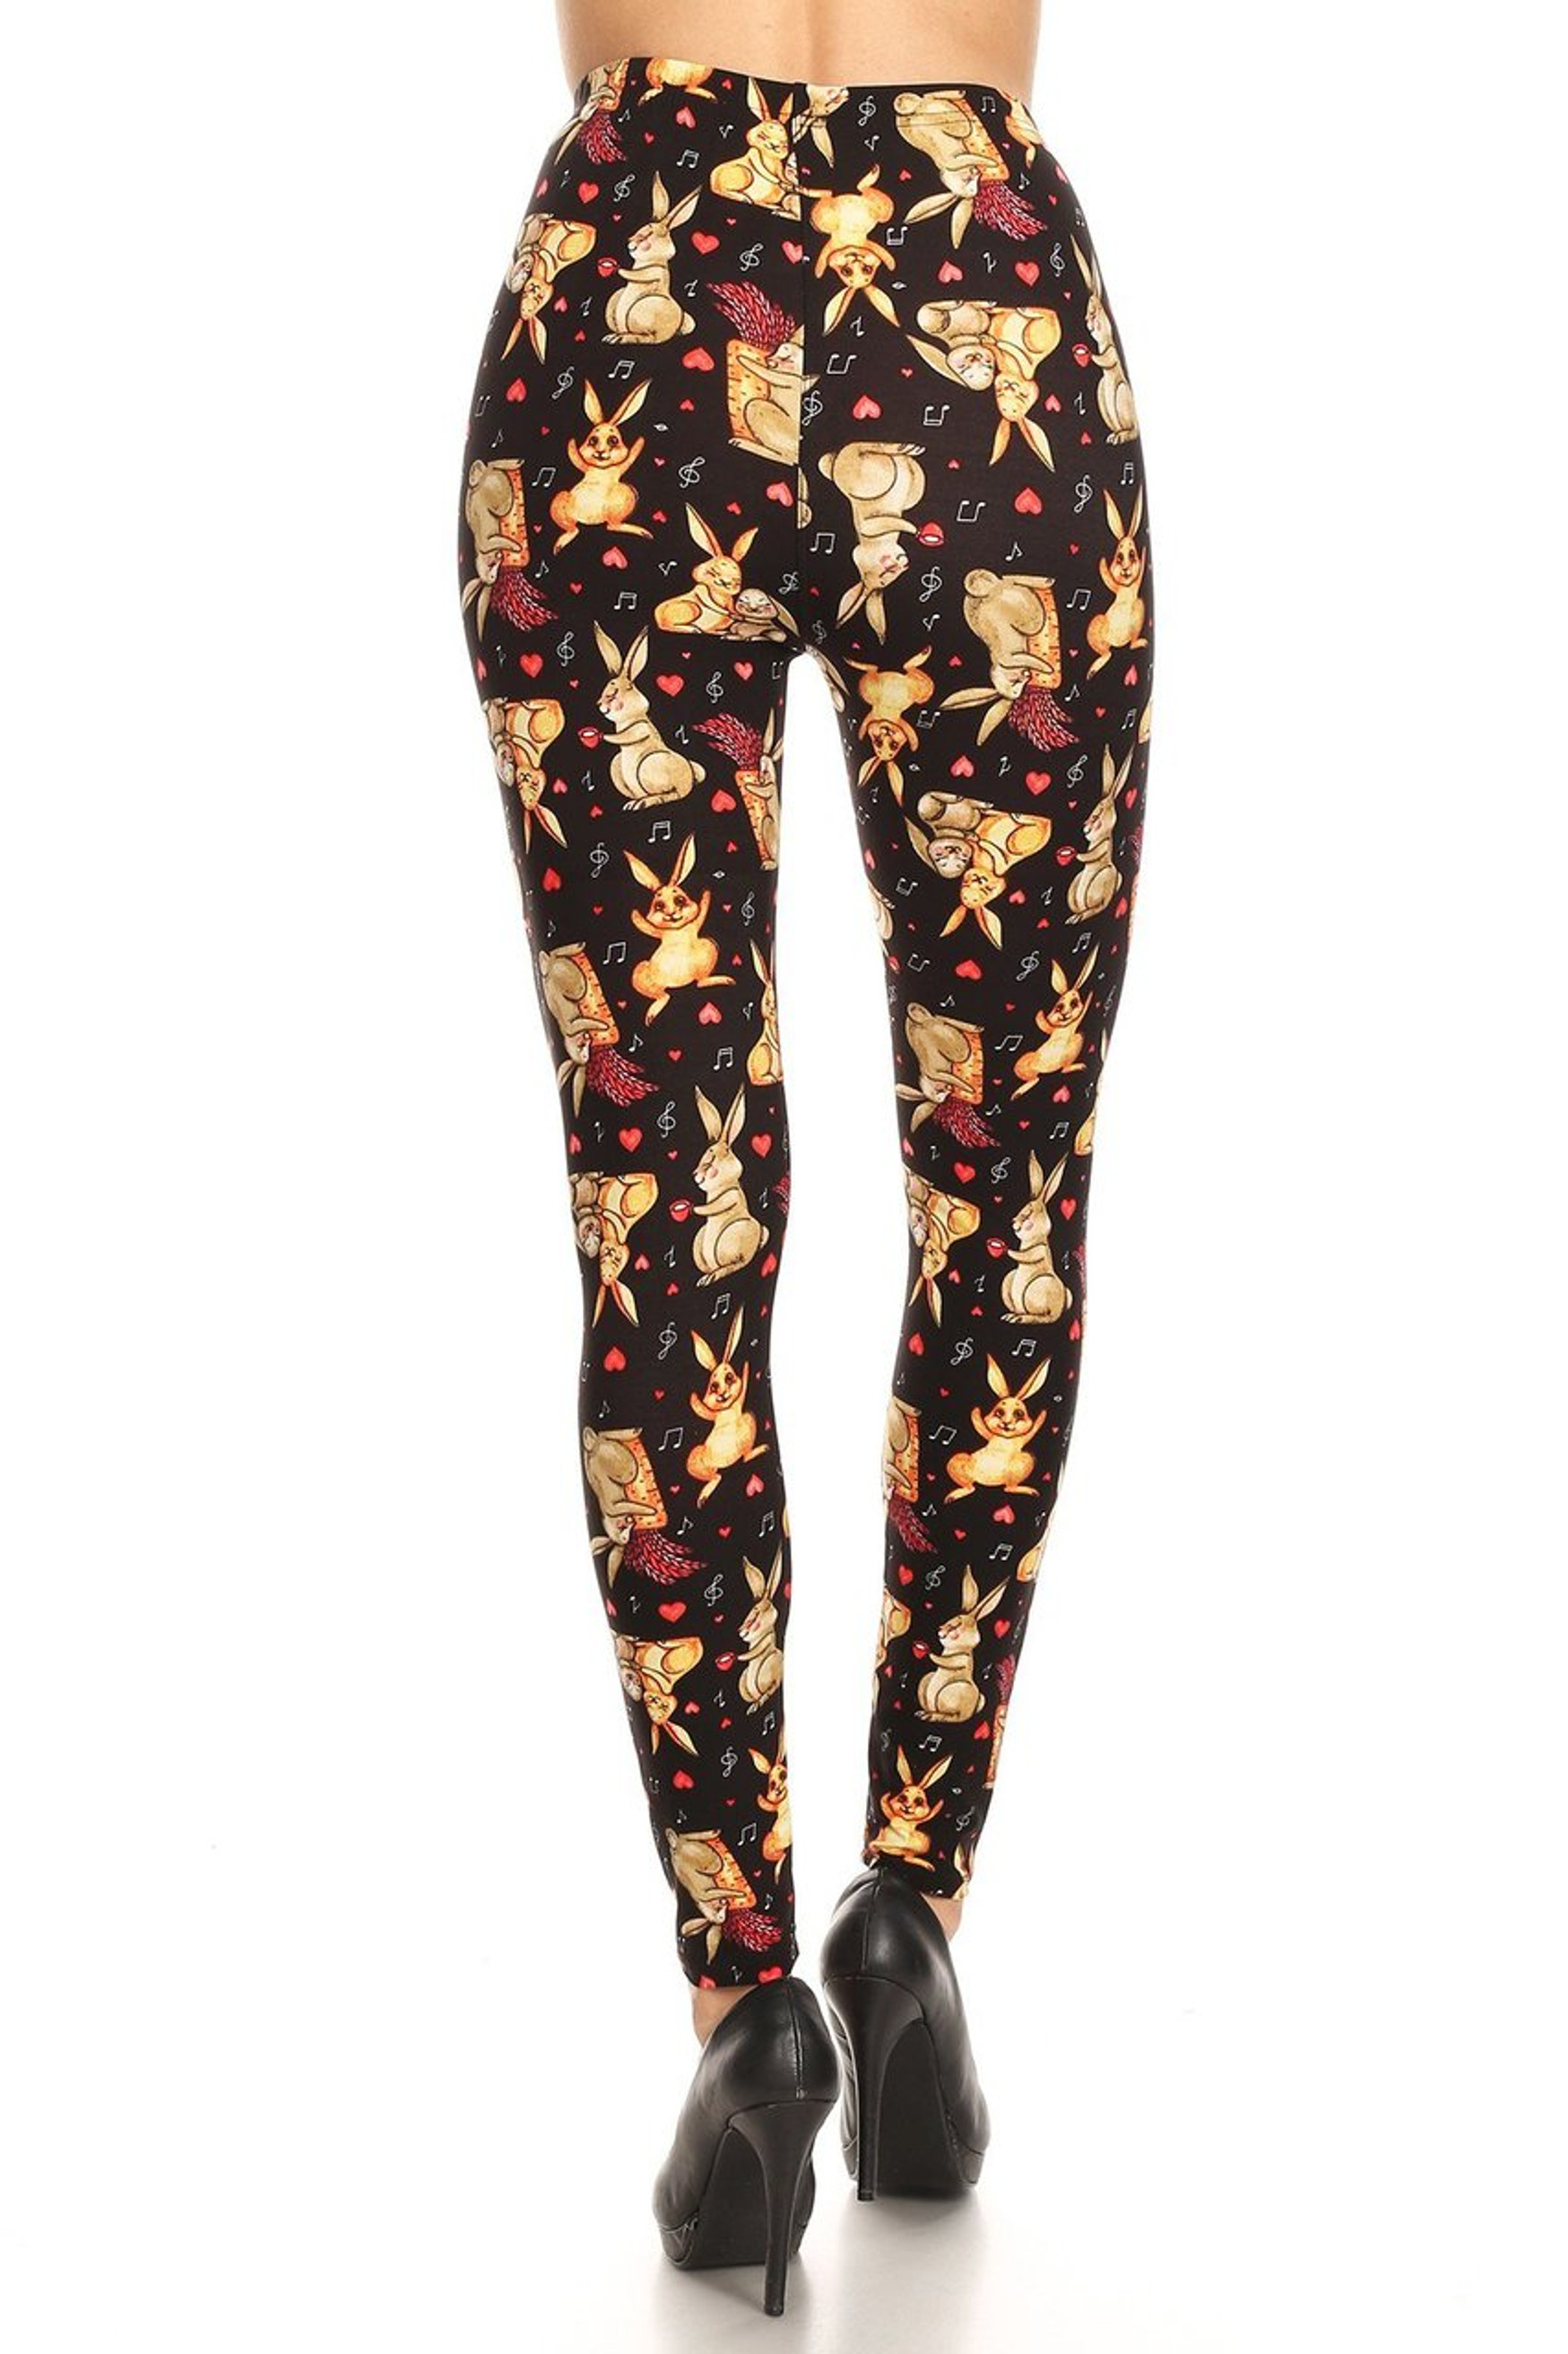 Brushed Easter Bunny Plus Size Leggings - 3X-5X